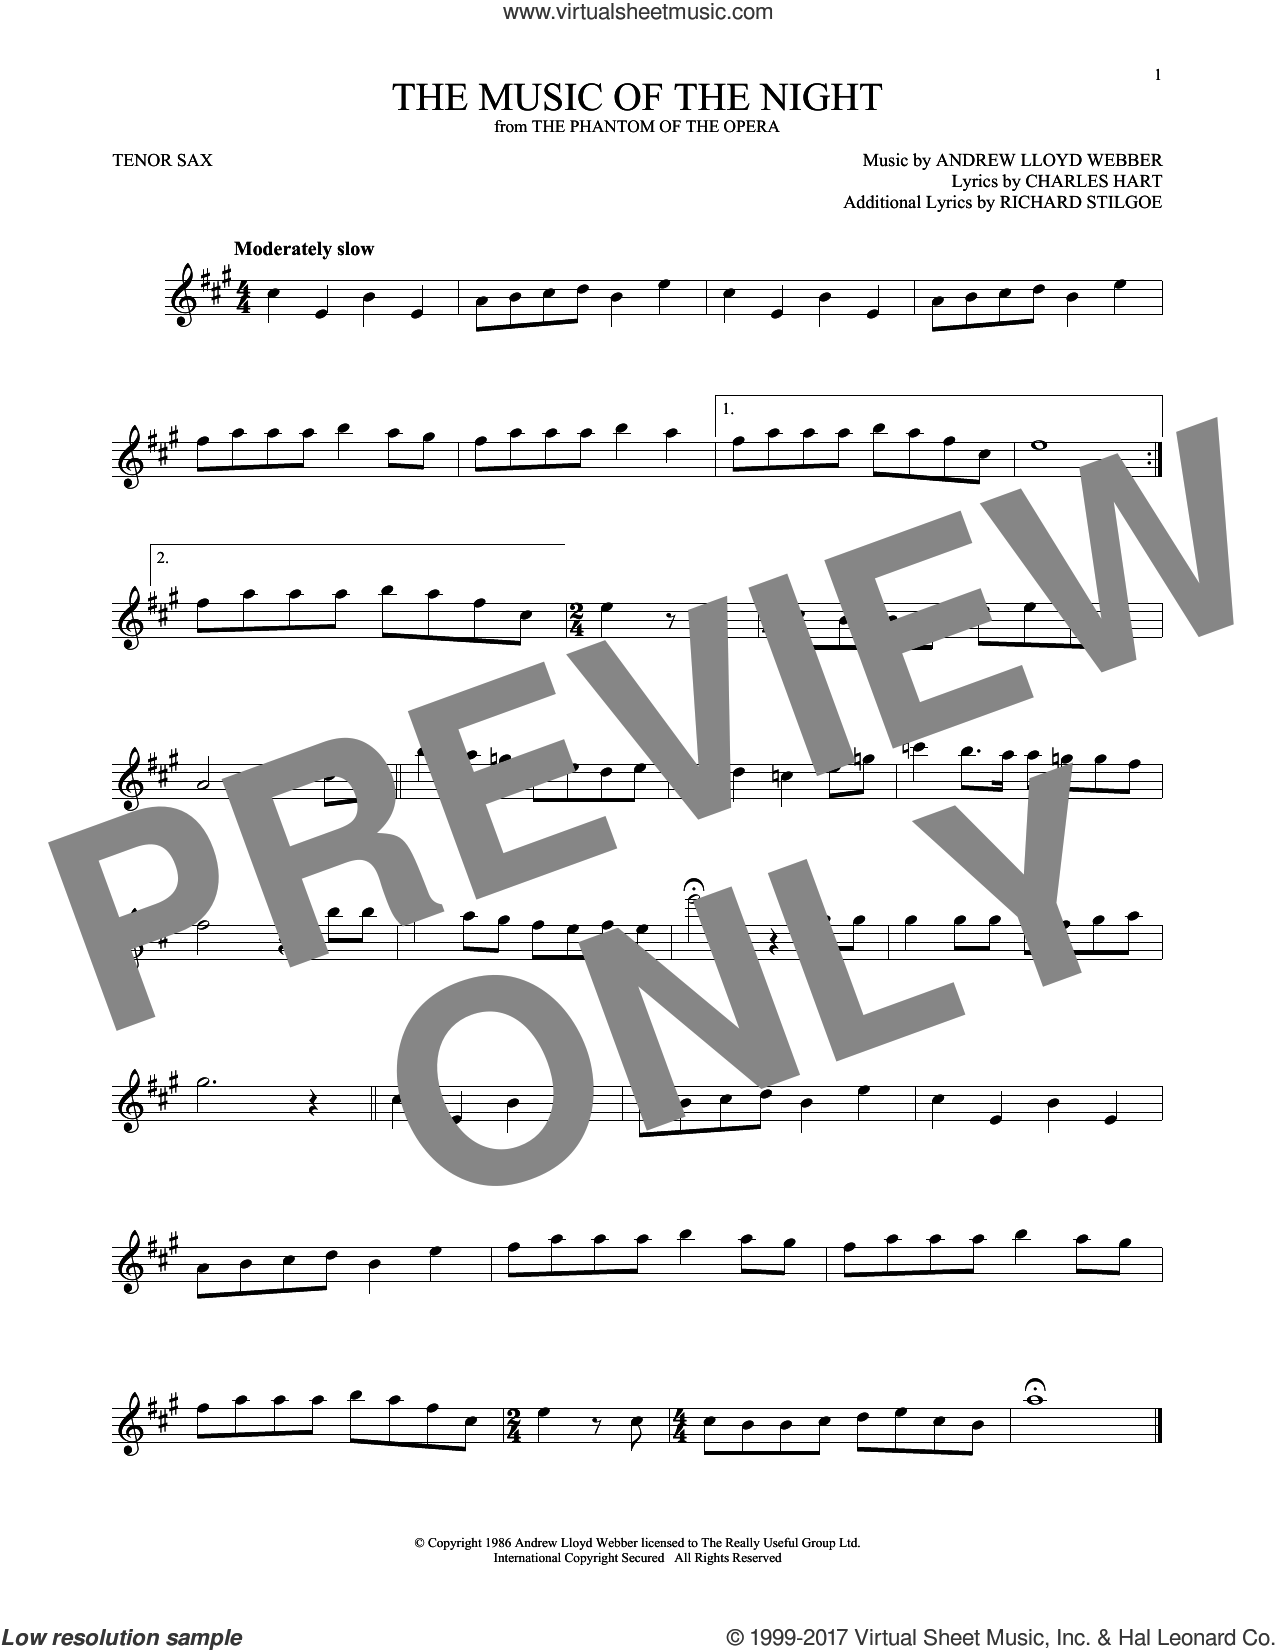 The Music Of The Night (from The Phantom Of The Opera) sheet music for tenor saxophone solo by Andrew Lloyd Webber, David Cook, Charles Hart and Richard Stilgoe, intermediate skill level